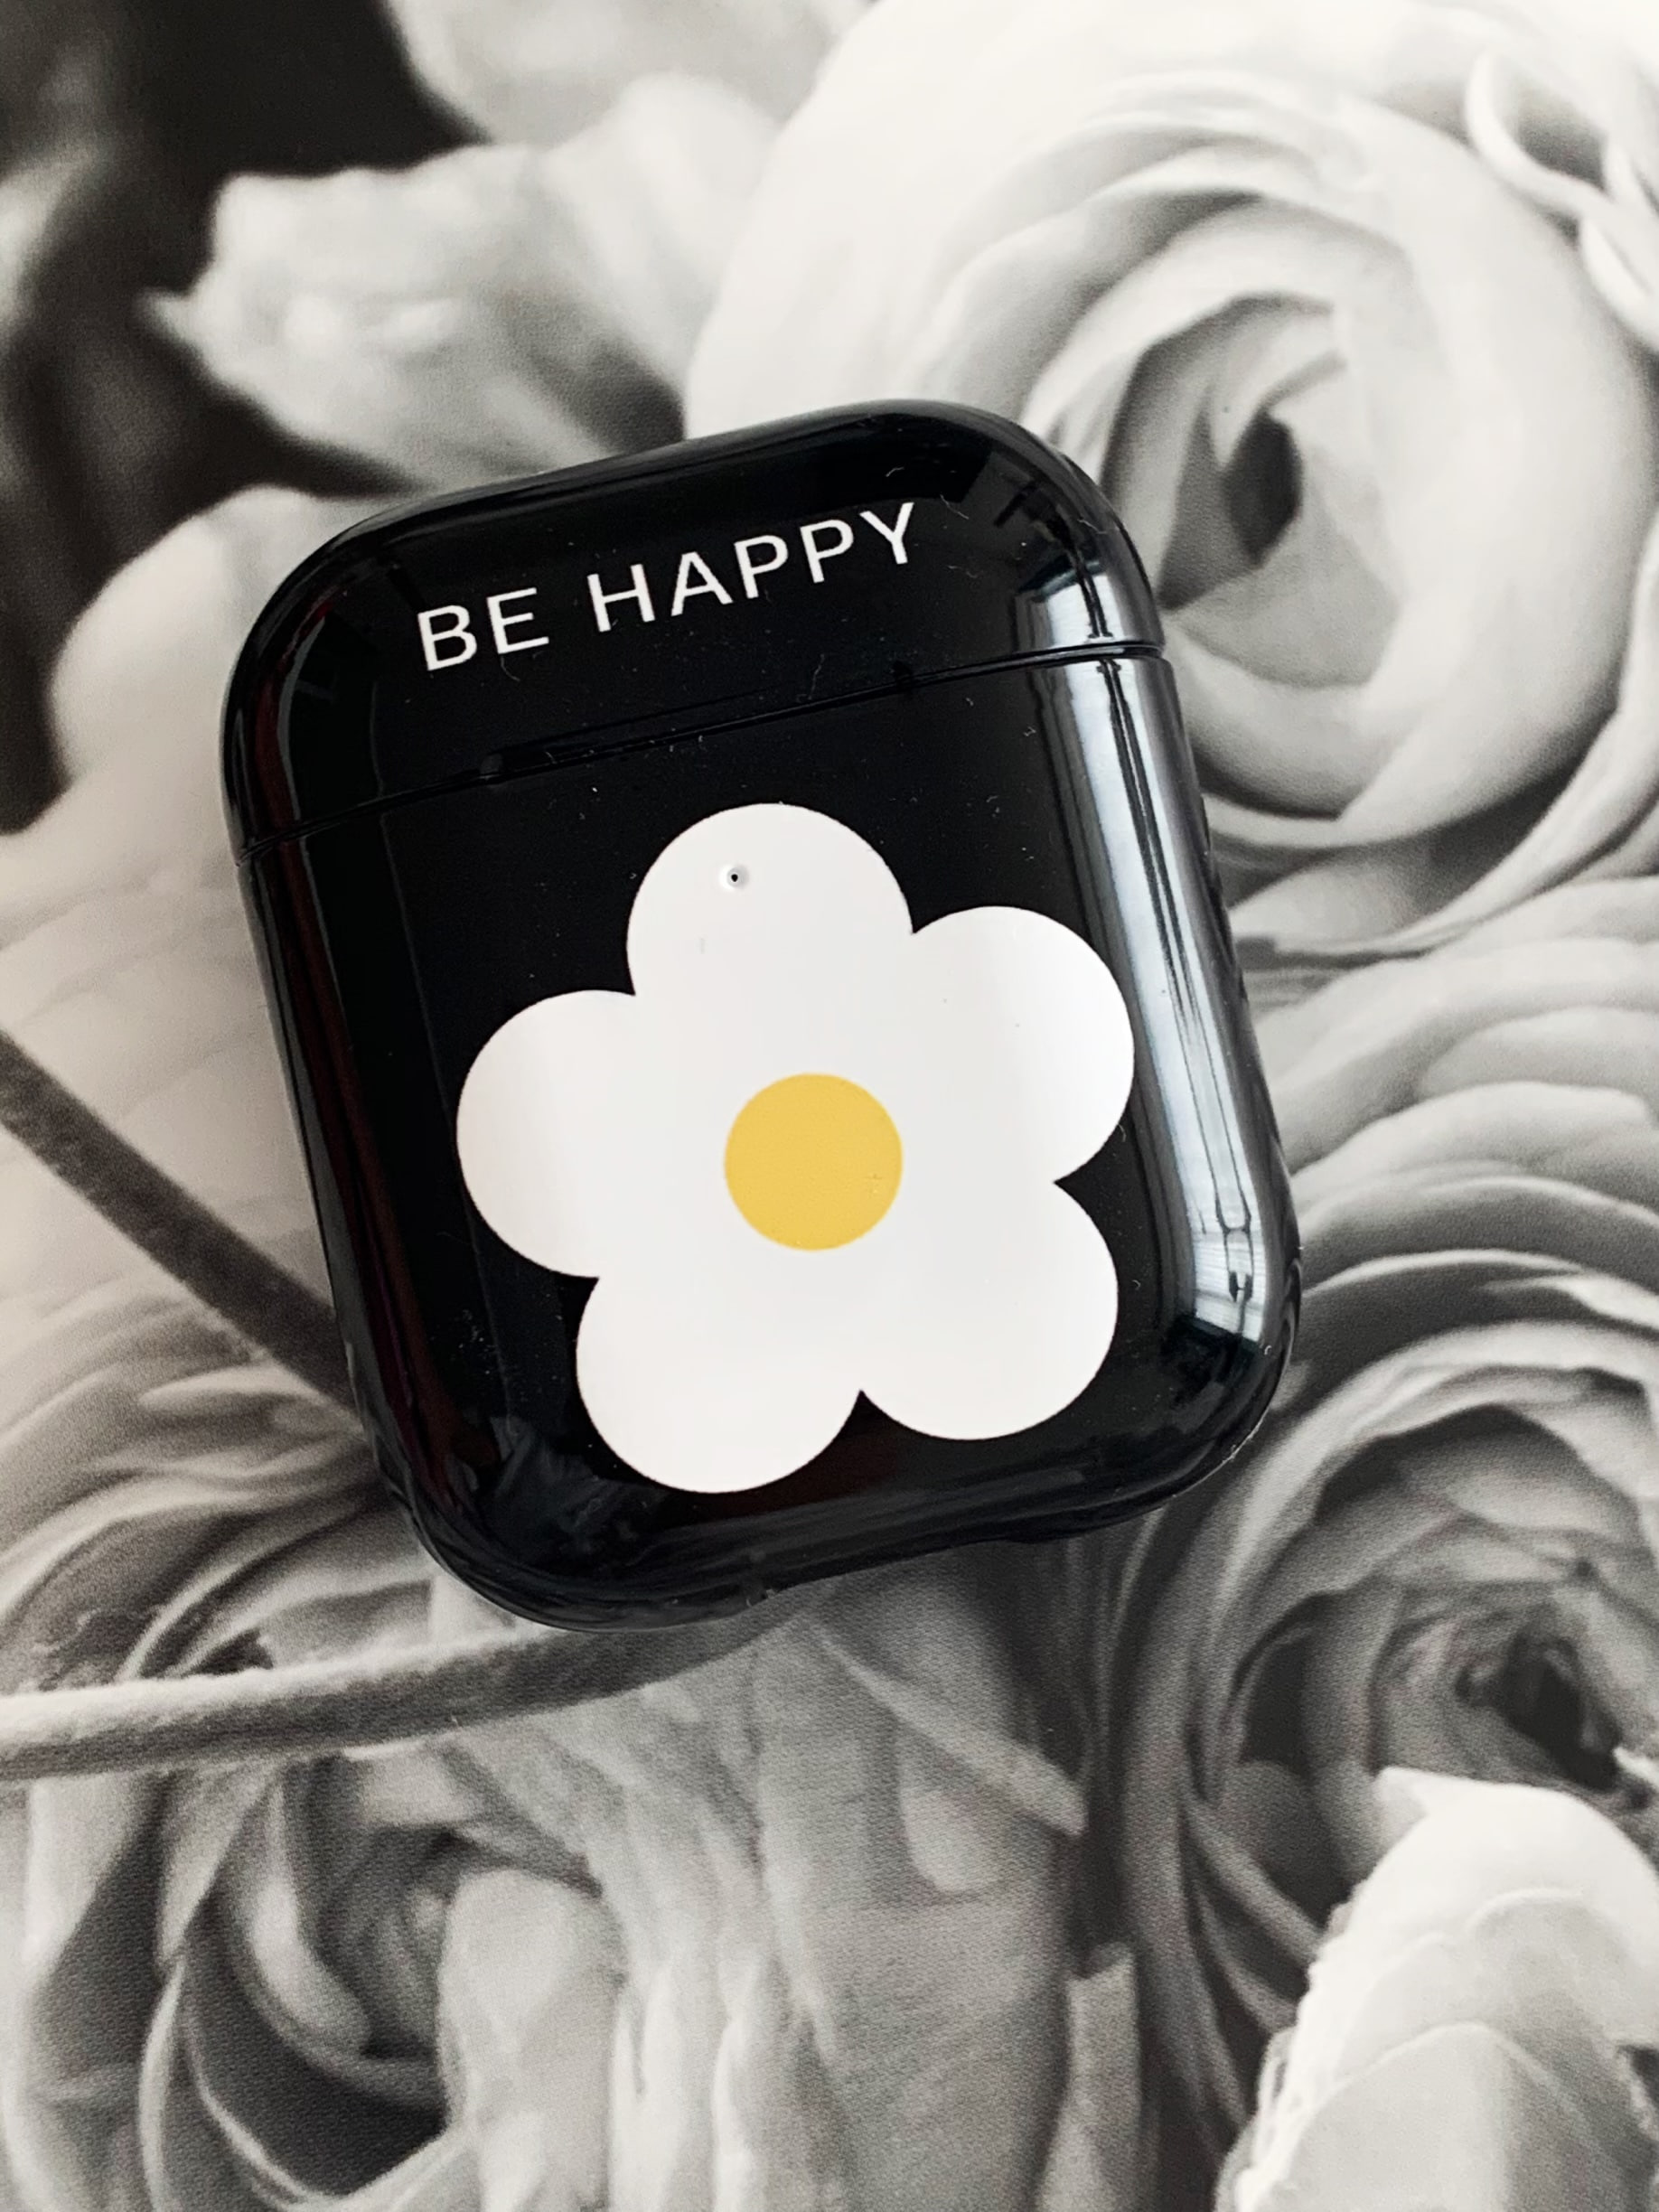 Be happy [ Black : Airpods ]